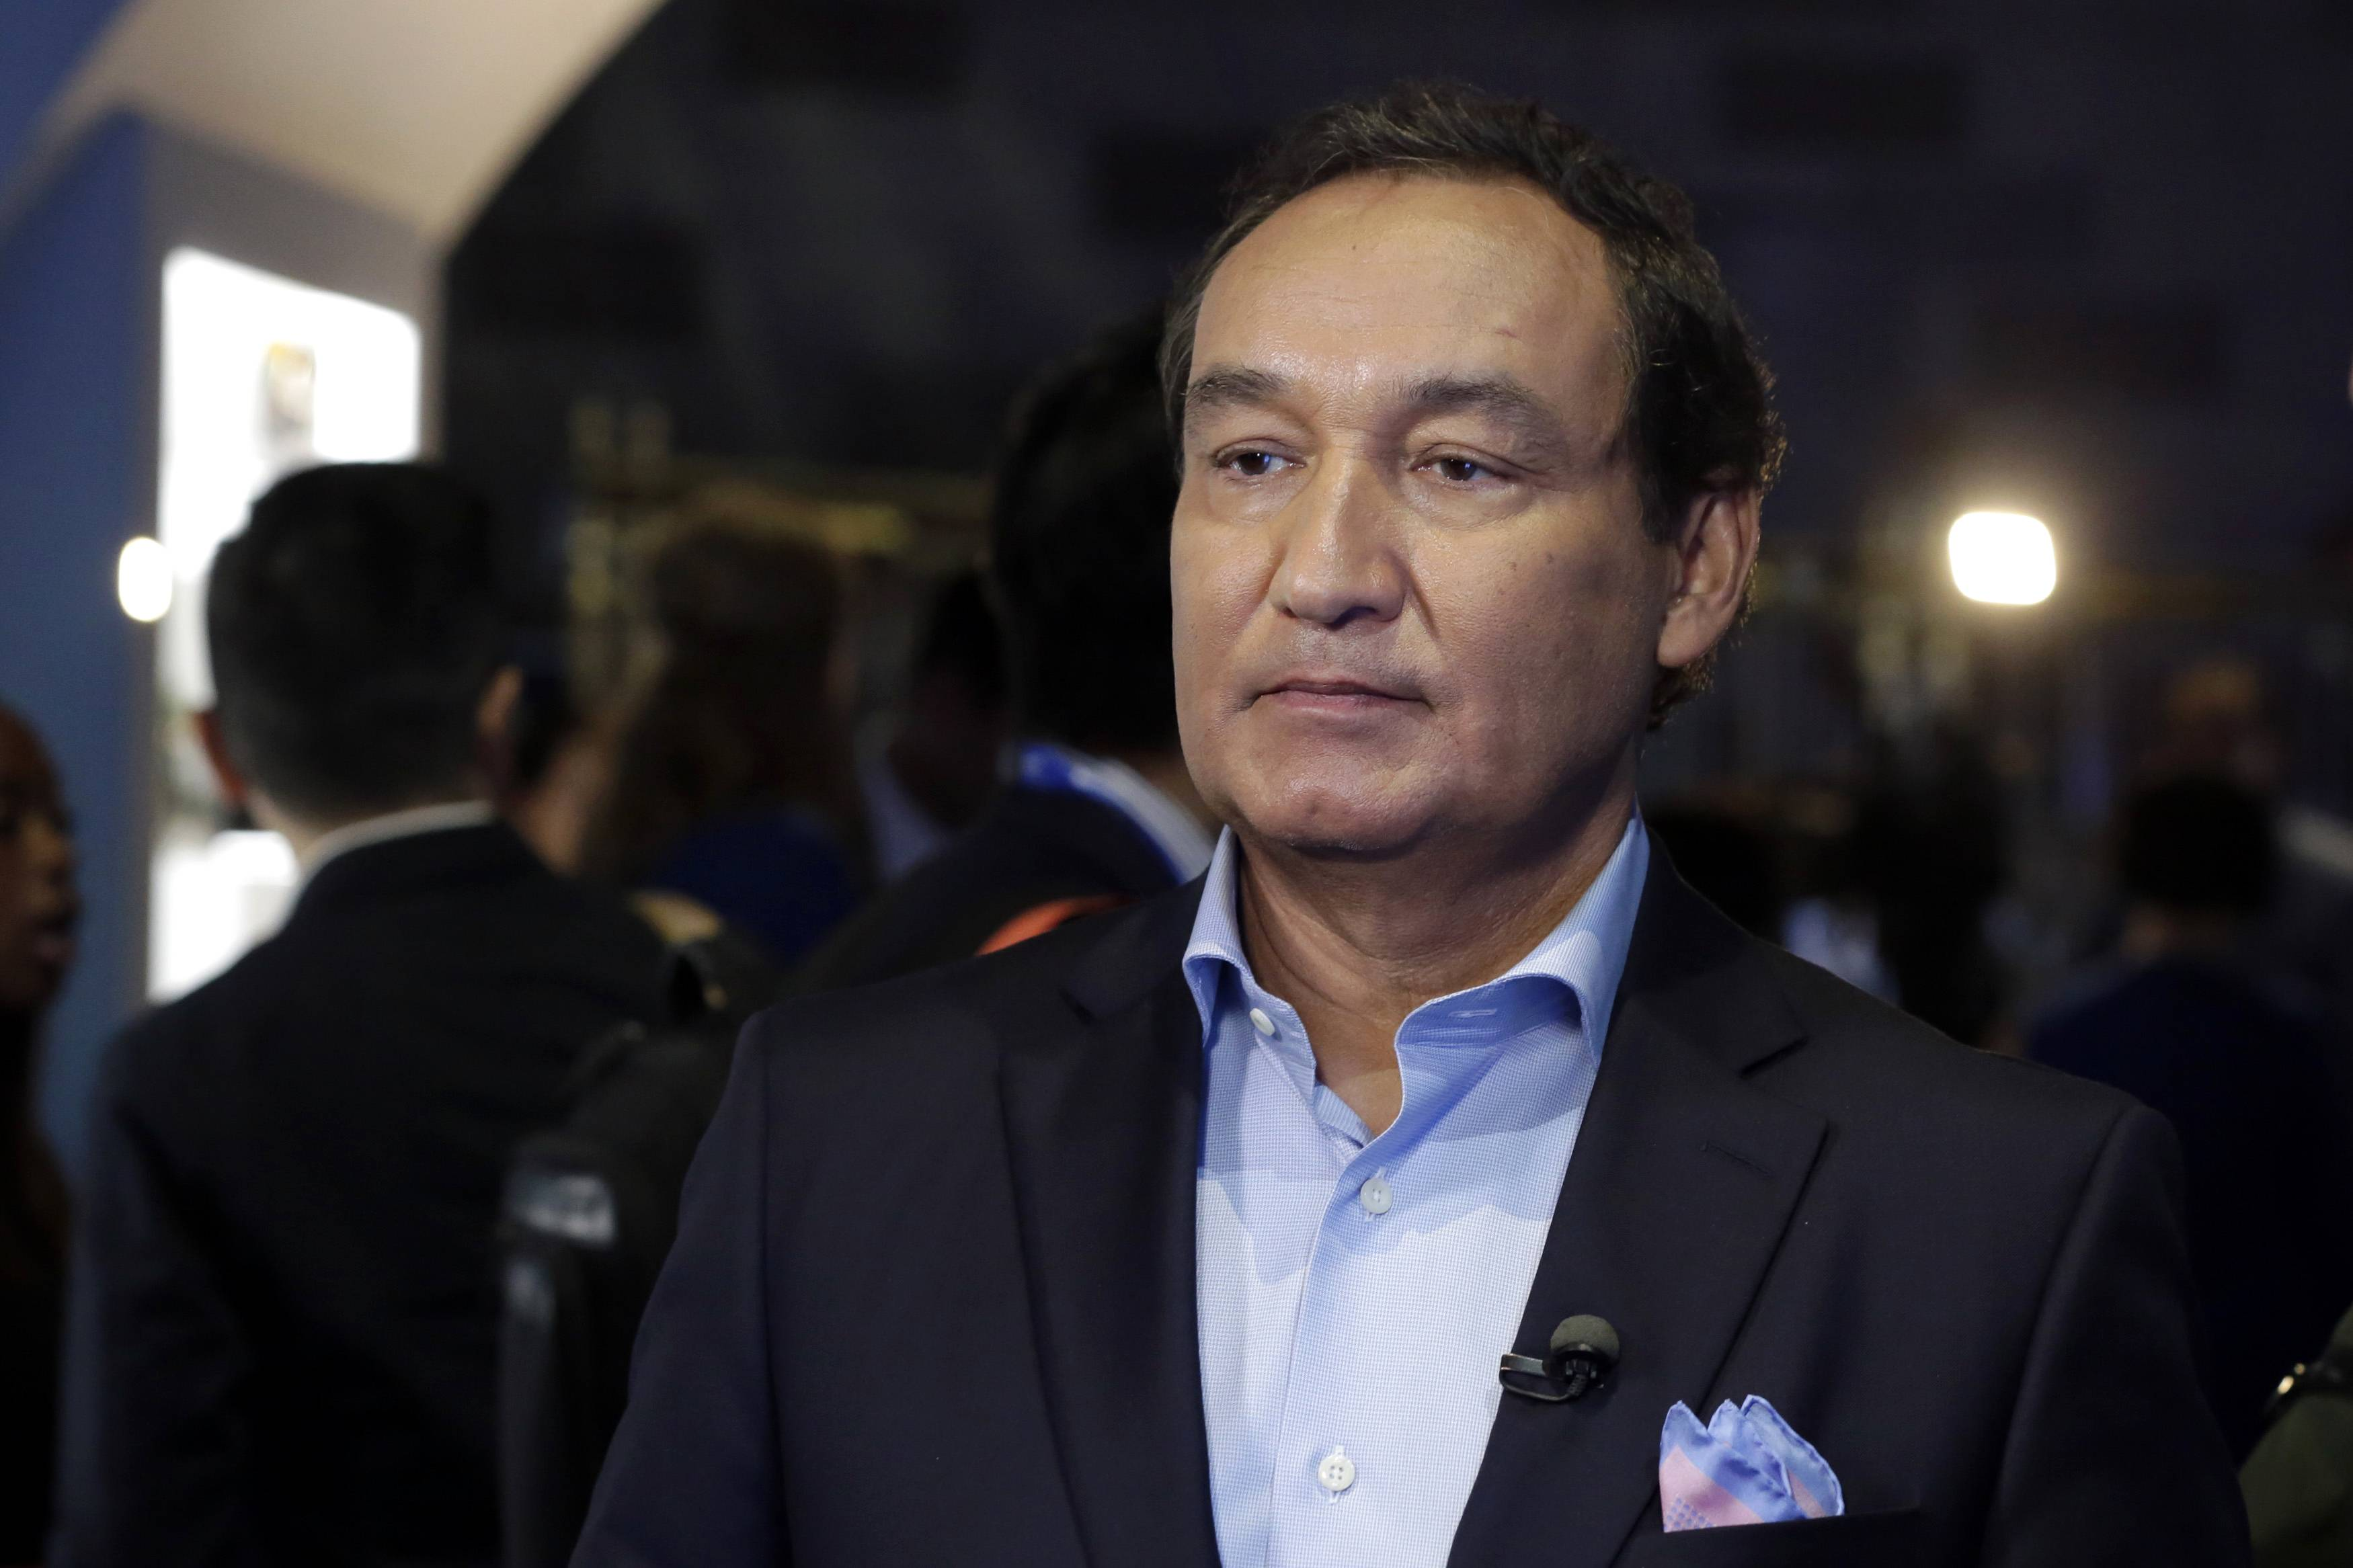 United CEO Oscar Munoz: The rise and fall of PRWeek's 'Communicator of the Year'